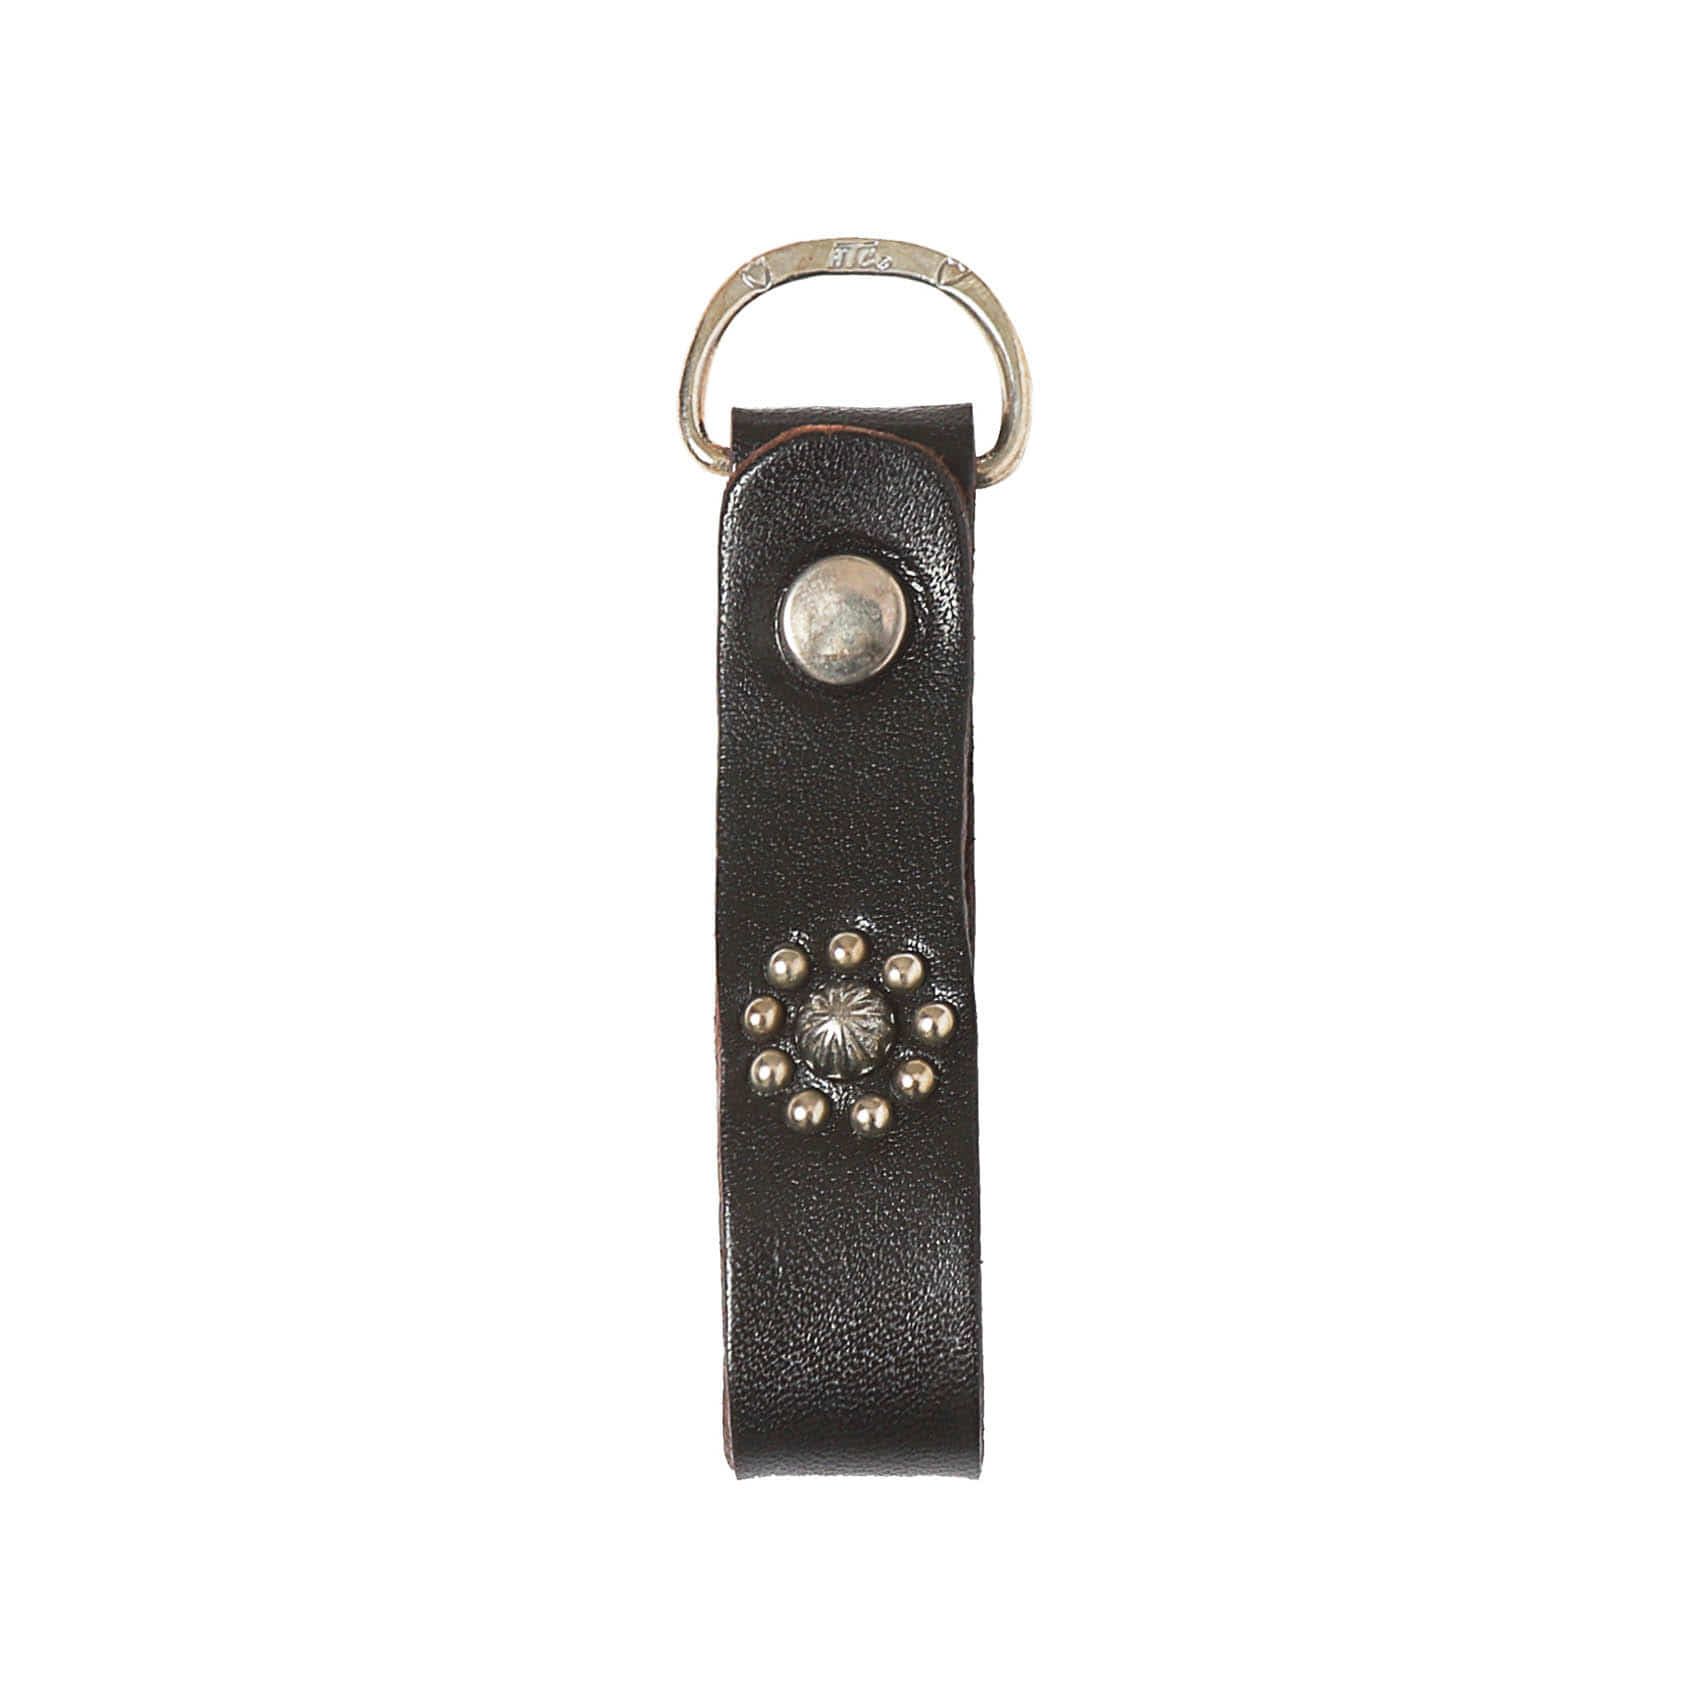 HTC D RING KEY HOLDER - BLACK